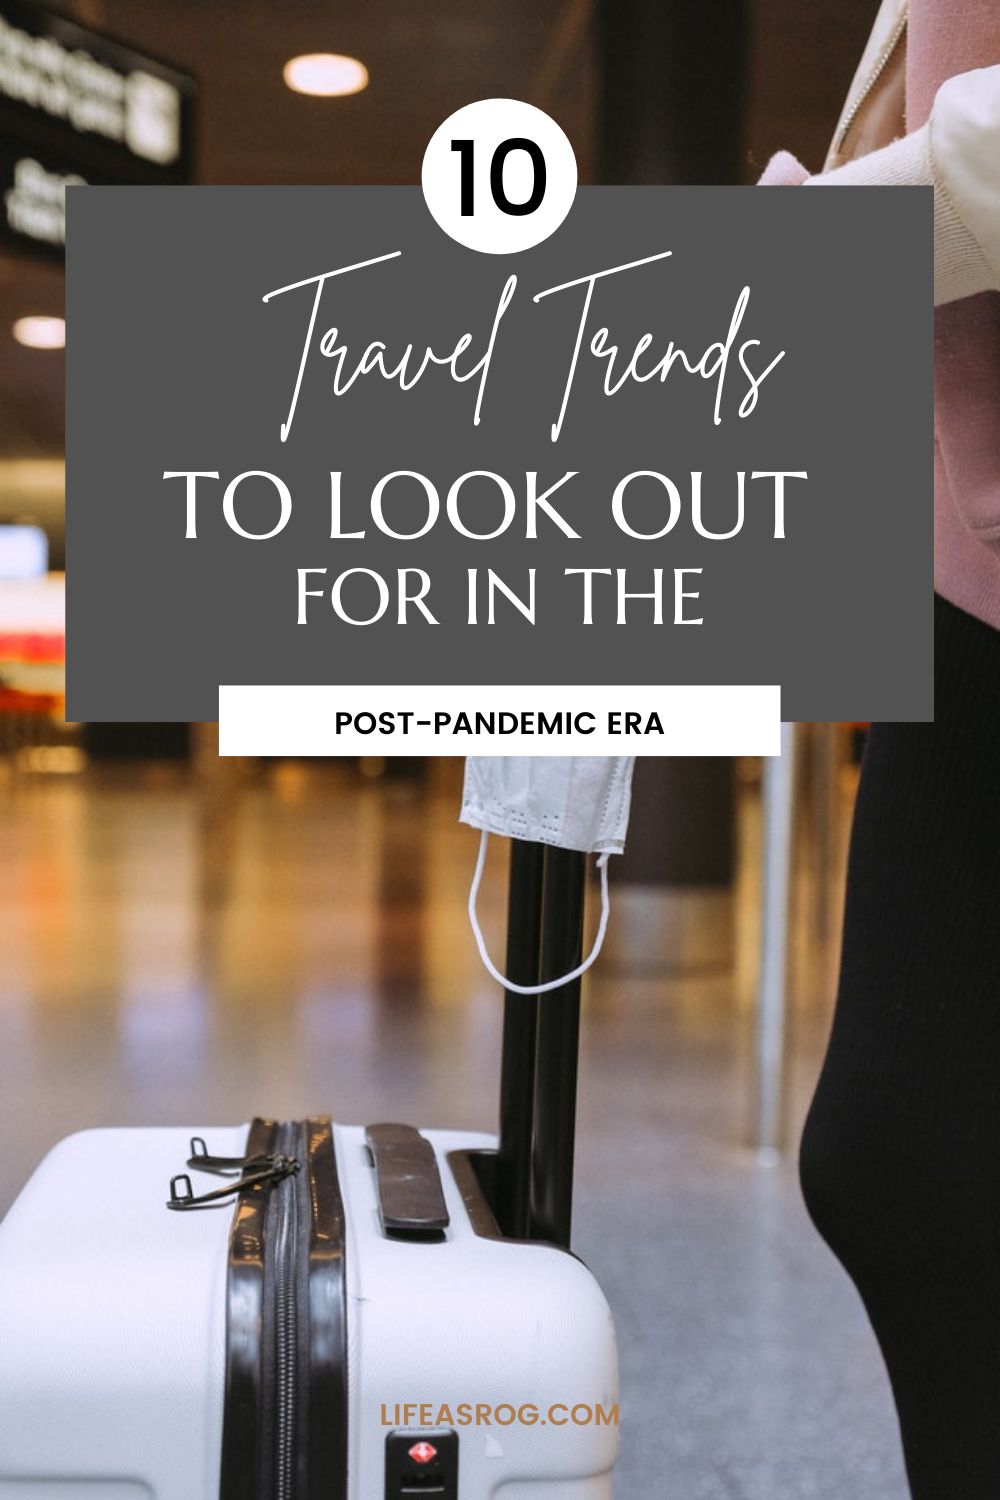 10 Travel Trends to Look Out for in the Post-Pandemic Era